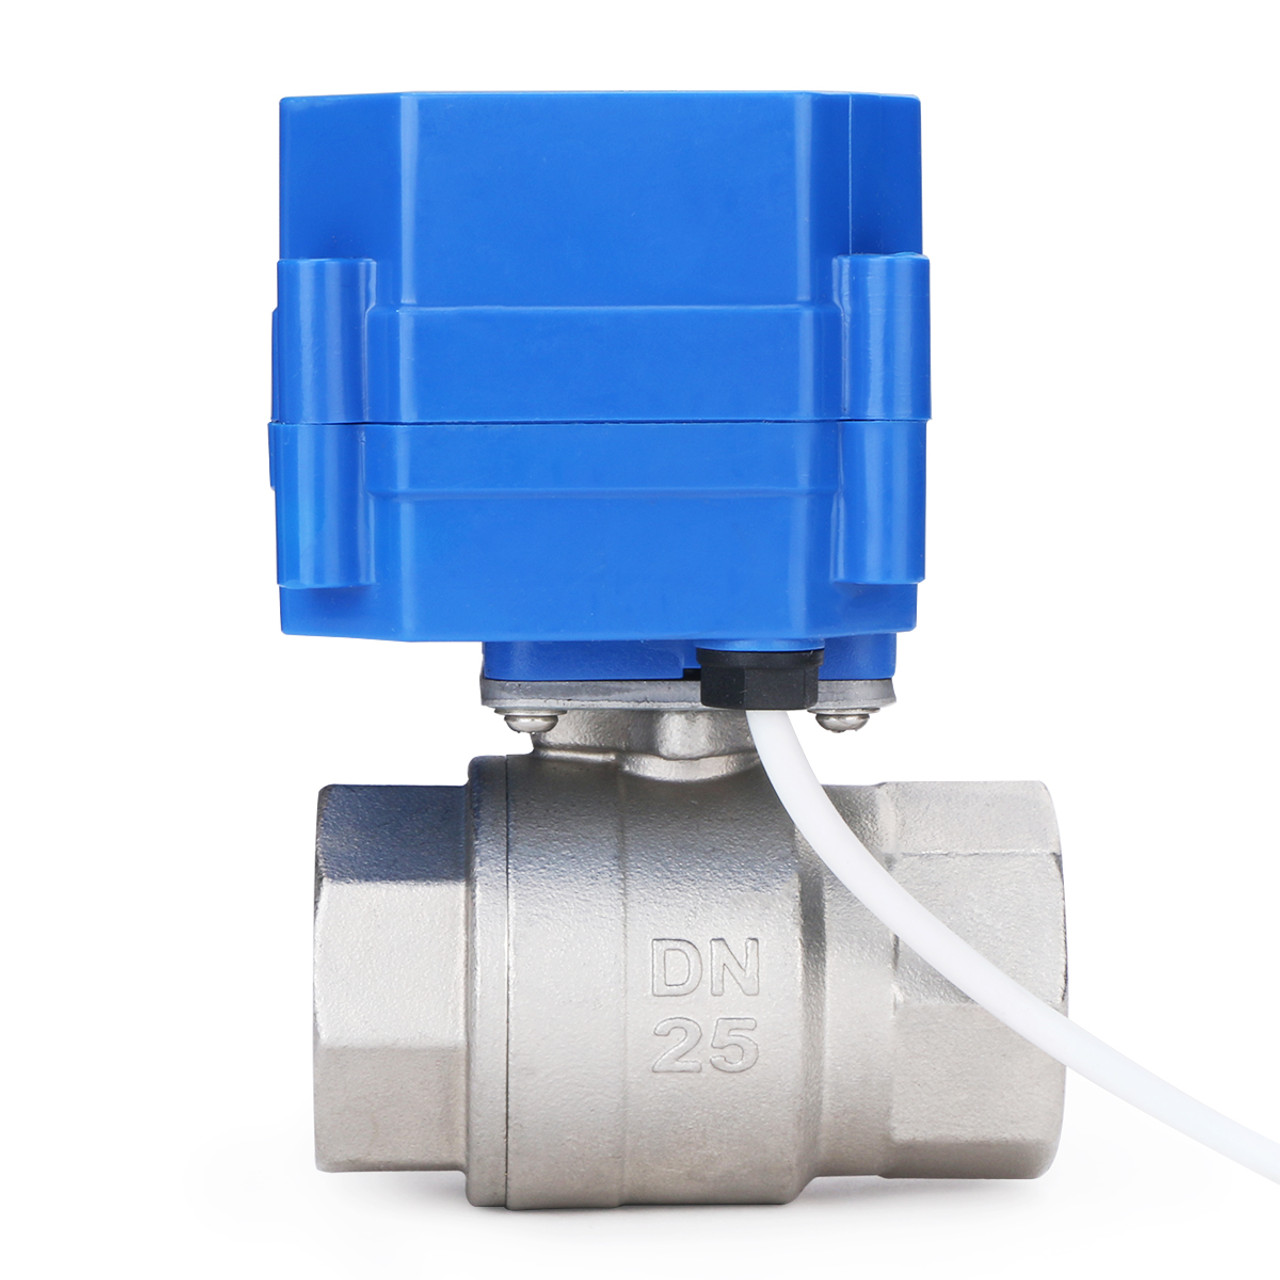 """U.S. Solid Motorized Ball Valve- 1"""" Stainless Steel Electrical Ball Valve with Full Port, 9-24 V AC/DC, 2 Wire Auto Return, Normally Open"""